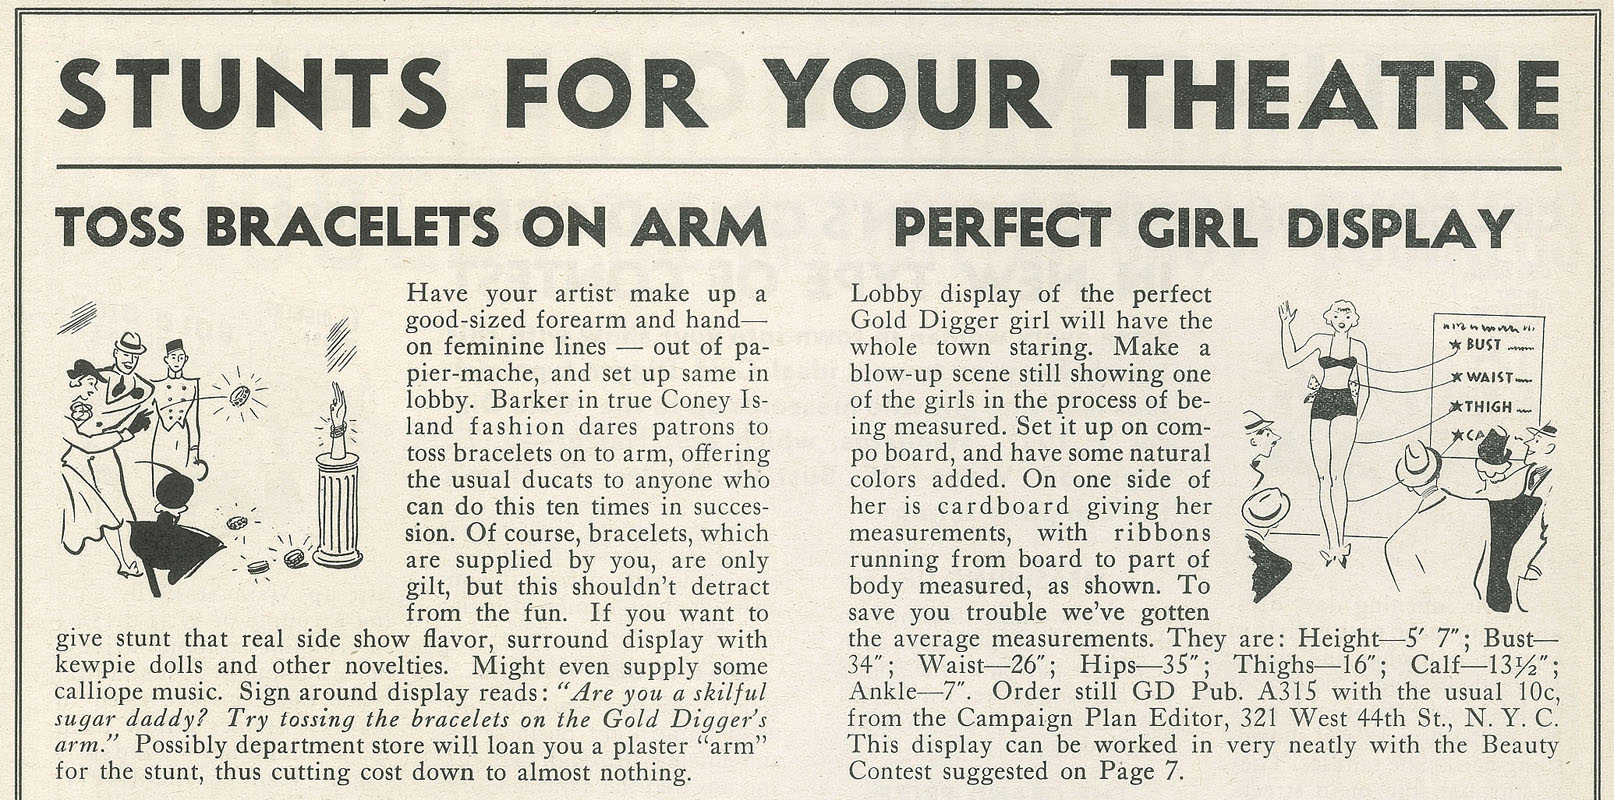 Excerpt from Page 7 of Gold Diggers of 1937 press book.